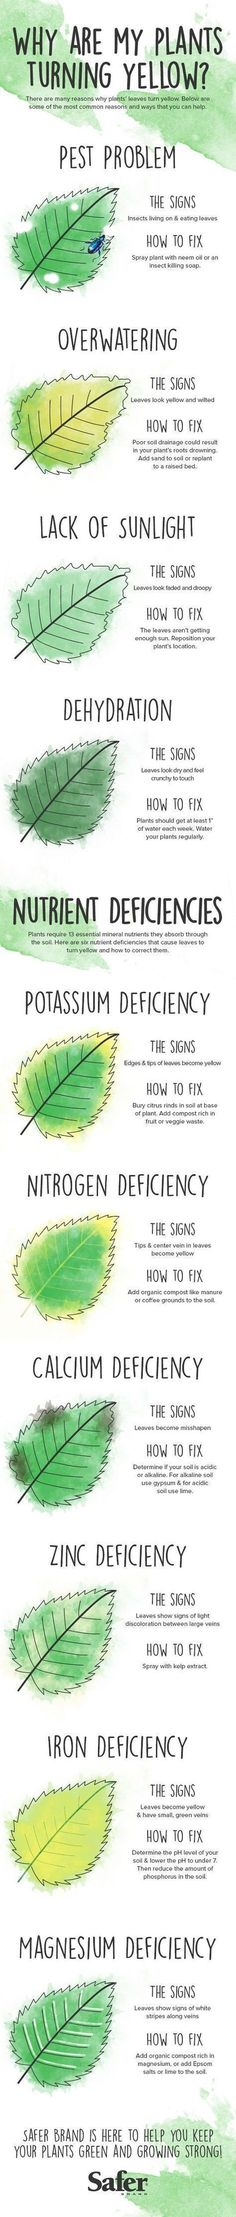 yellowing leavings, dying plants, plants turning yellow, gardening, green thumb, organic gardening, gardening tips, house plant gardening, house plants, plant growing tips, infographics, reader submission, safer brand #hydroponicsinfographic #hydroponicshouseplants #greenhouse #organicgardening